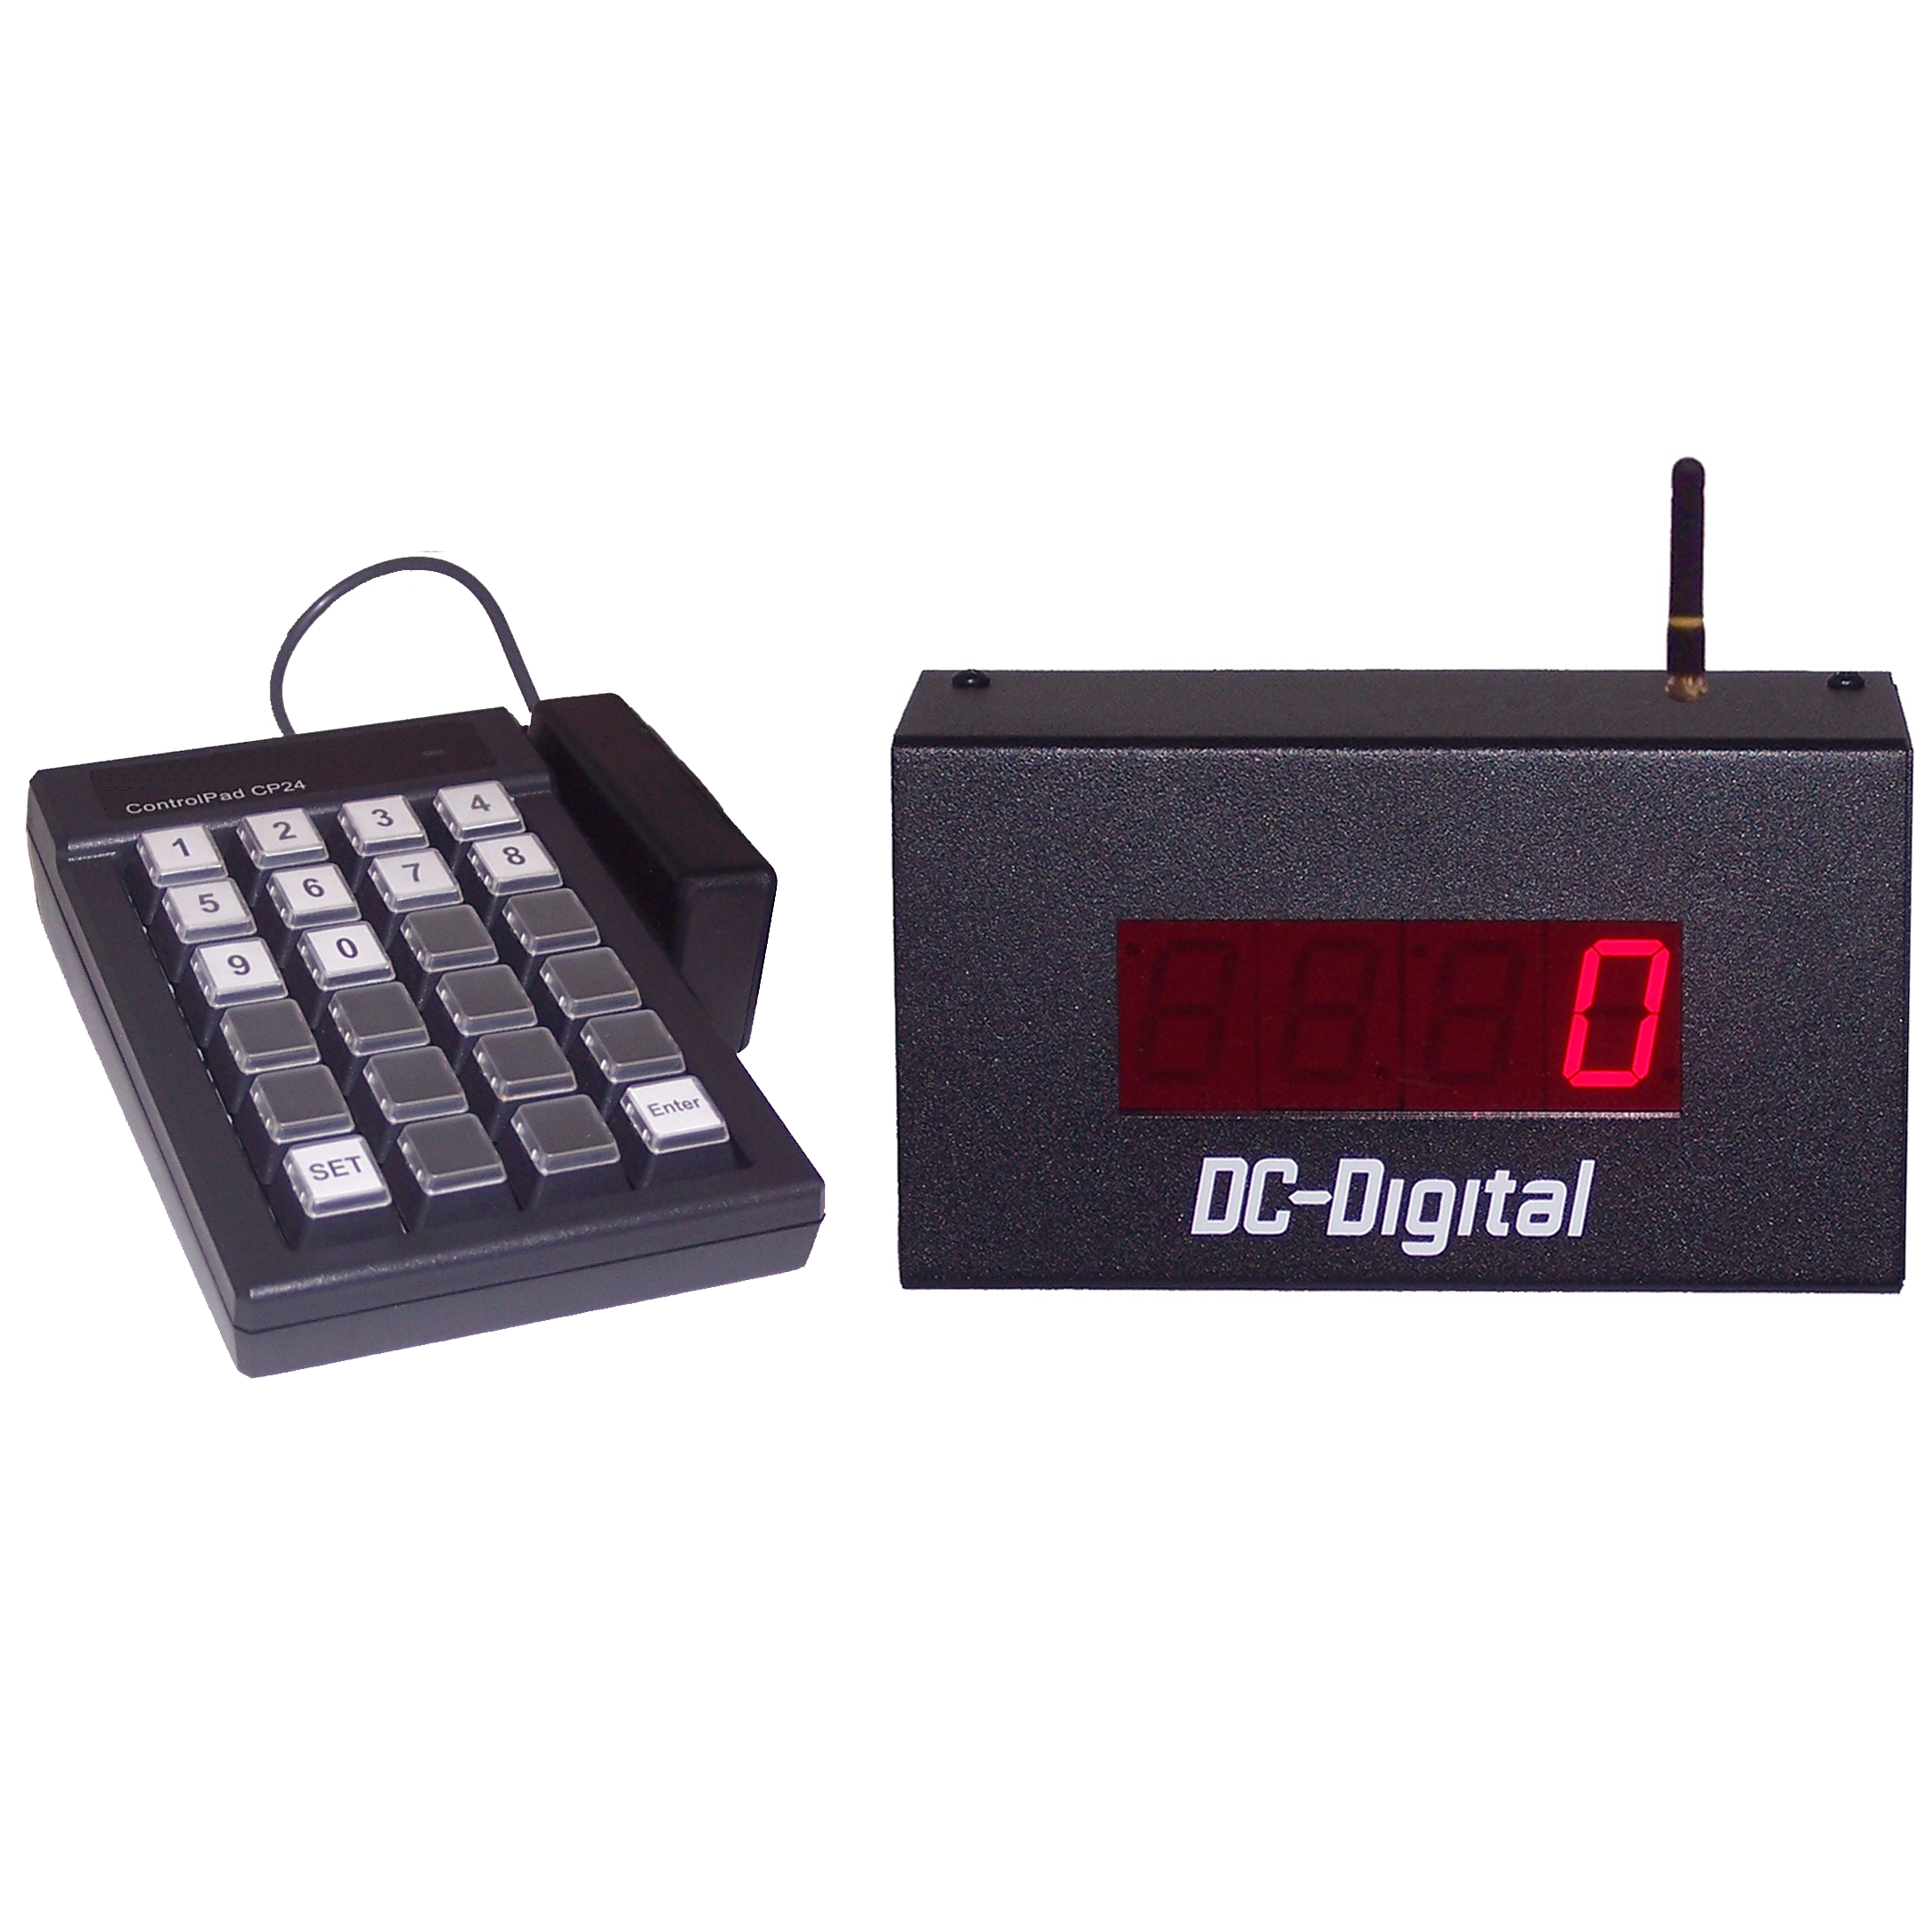 DC-10-Static-Key-W-Wireless-Keypad-Controlled-Static-Number-Display-1-Inch-Digits